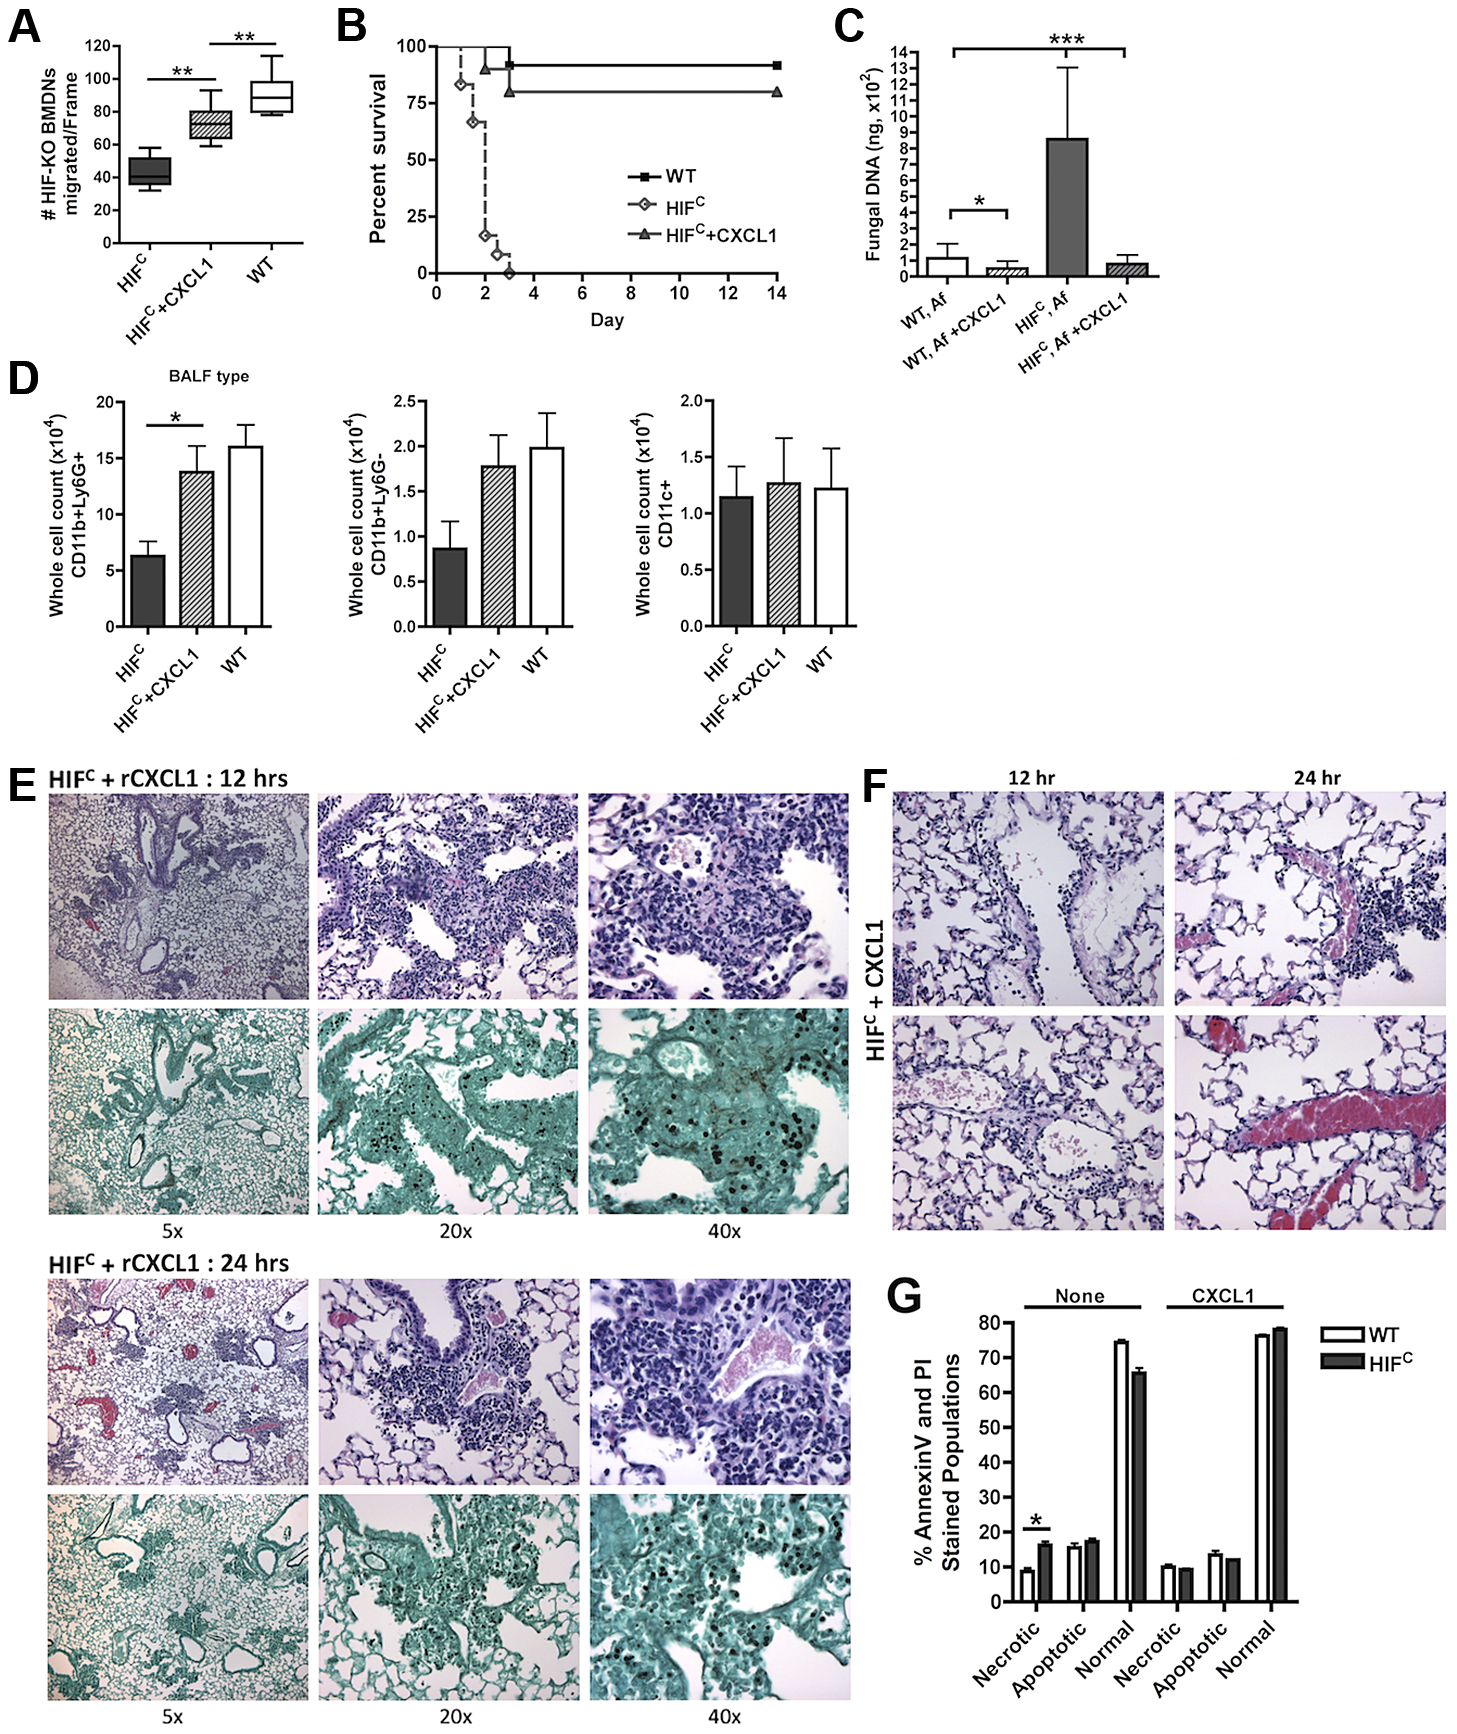 Restoration of physiologically relevant amounts of CXCL1 during infection restores neutrophil levels and survival of HIF<sup>C</sup> mice.